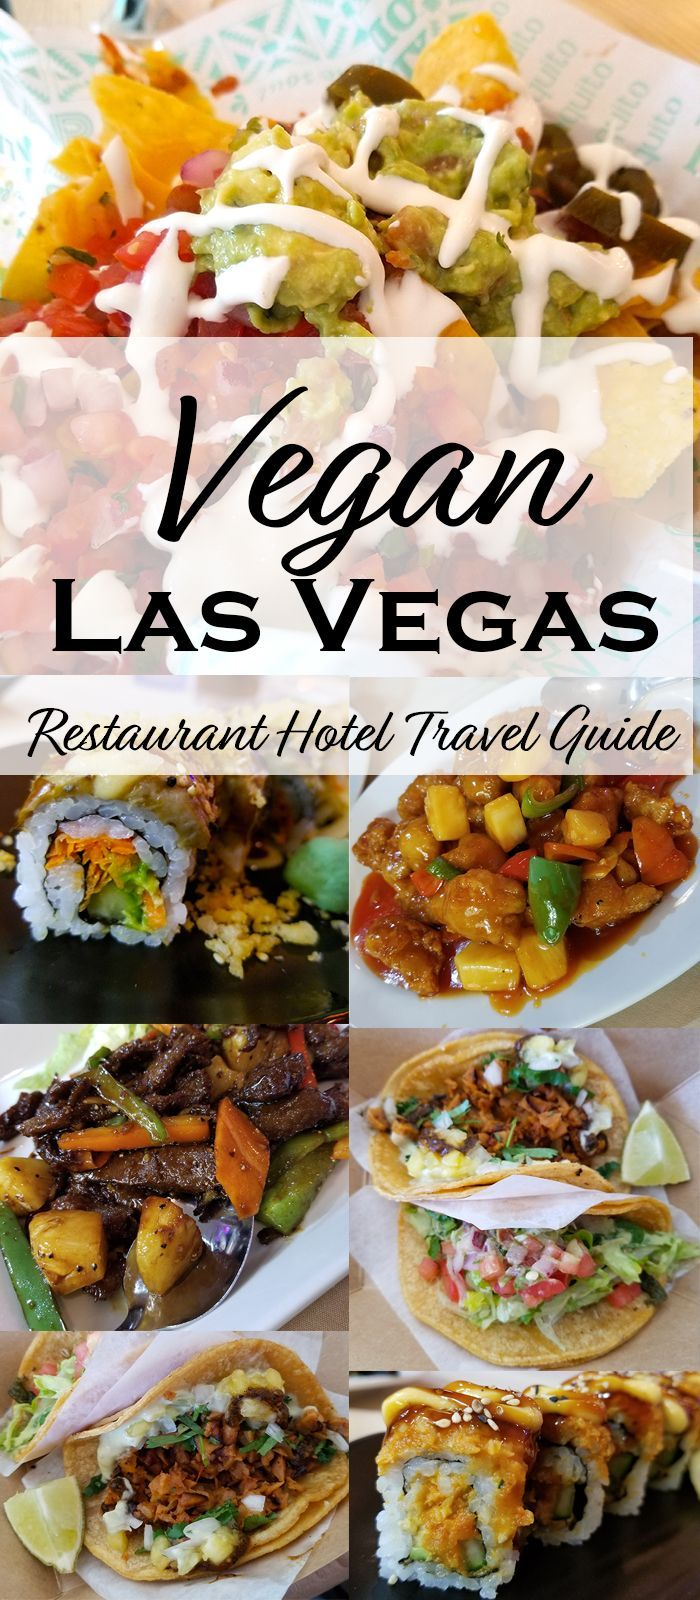 Las Vegas Vegan Guide Vegan Restaurants Hotels And Shows Vegan Guide Vegan Restaurants Vegas Food